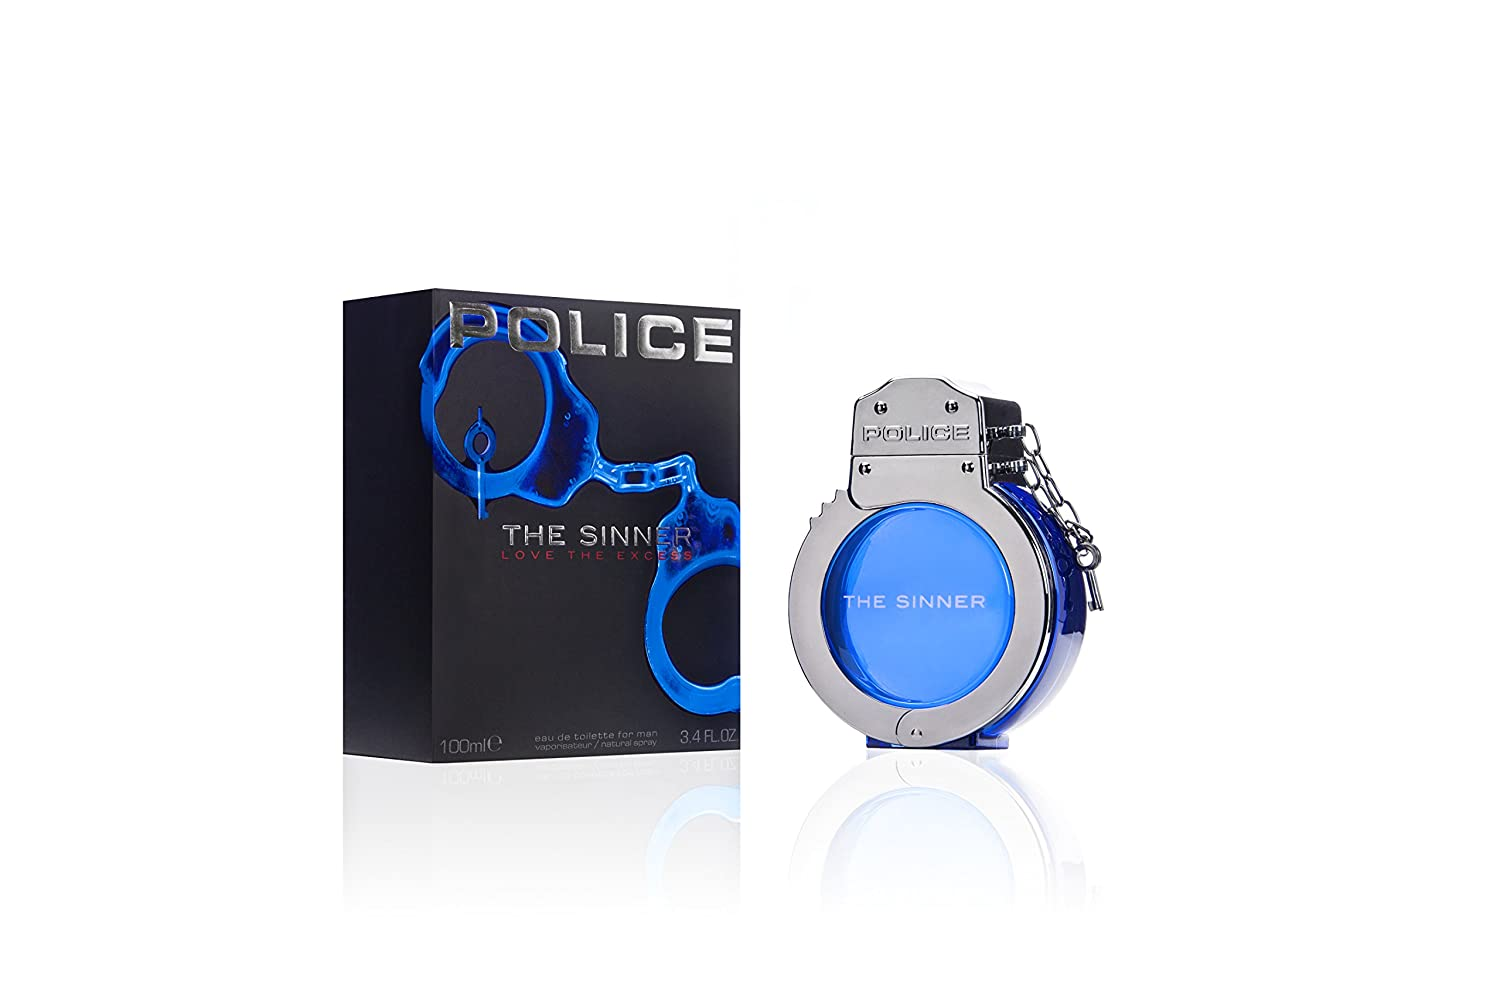 Amazon.com : POLICE The Sinner Eau De Toilette Spray for Men, 3.4 Fluid Ounce : Beauty